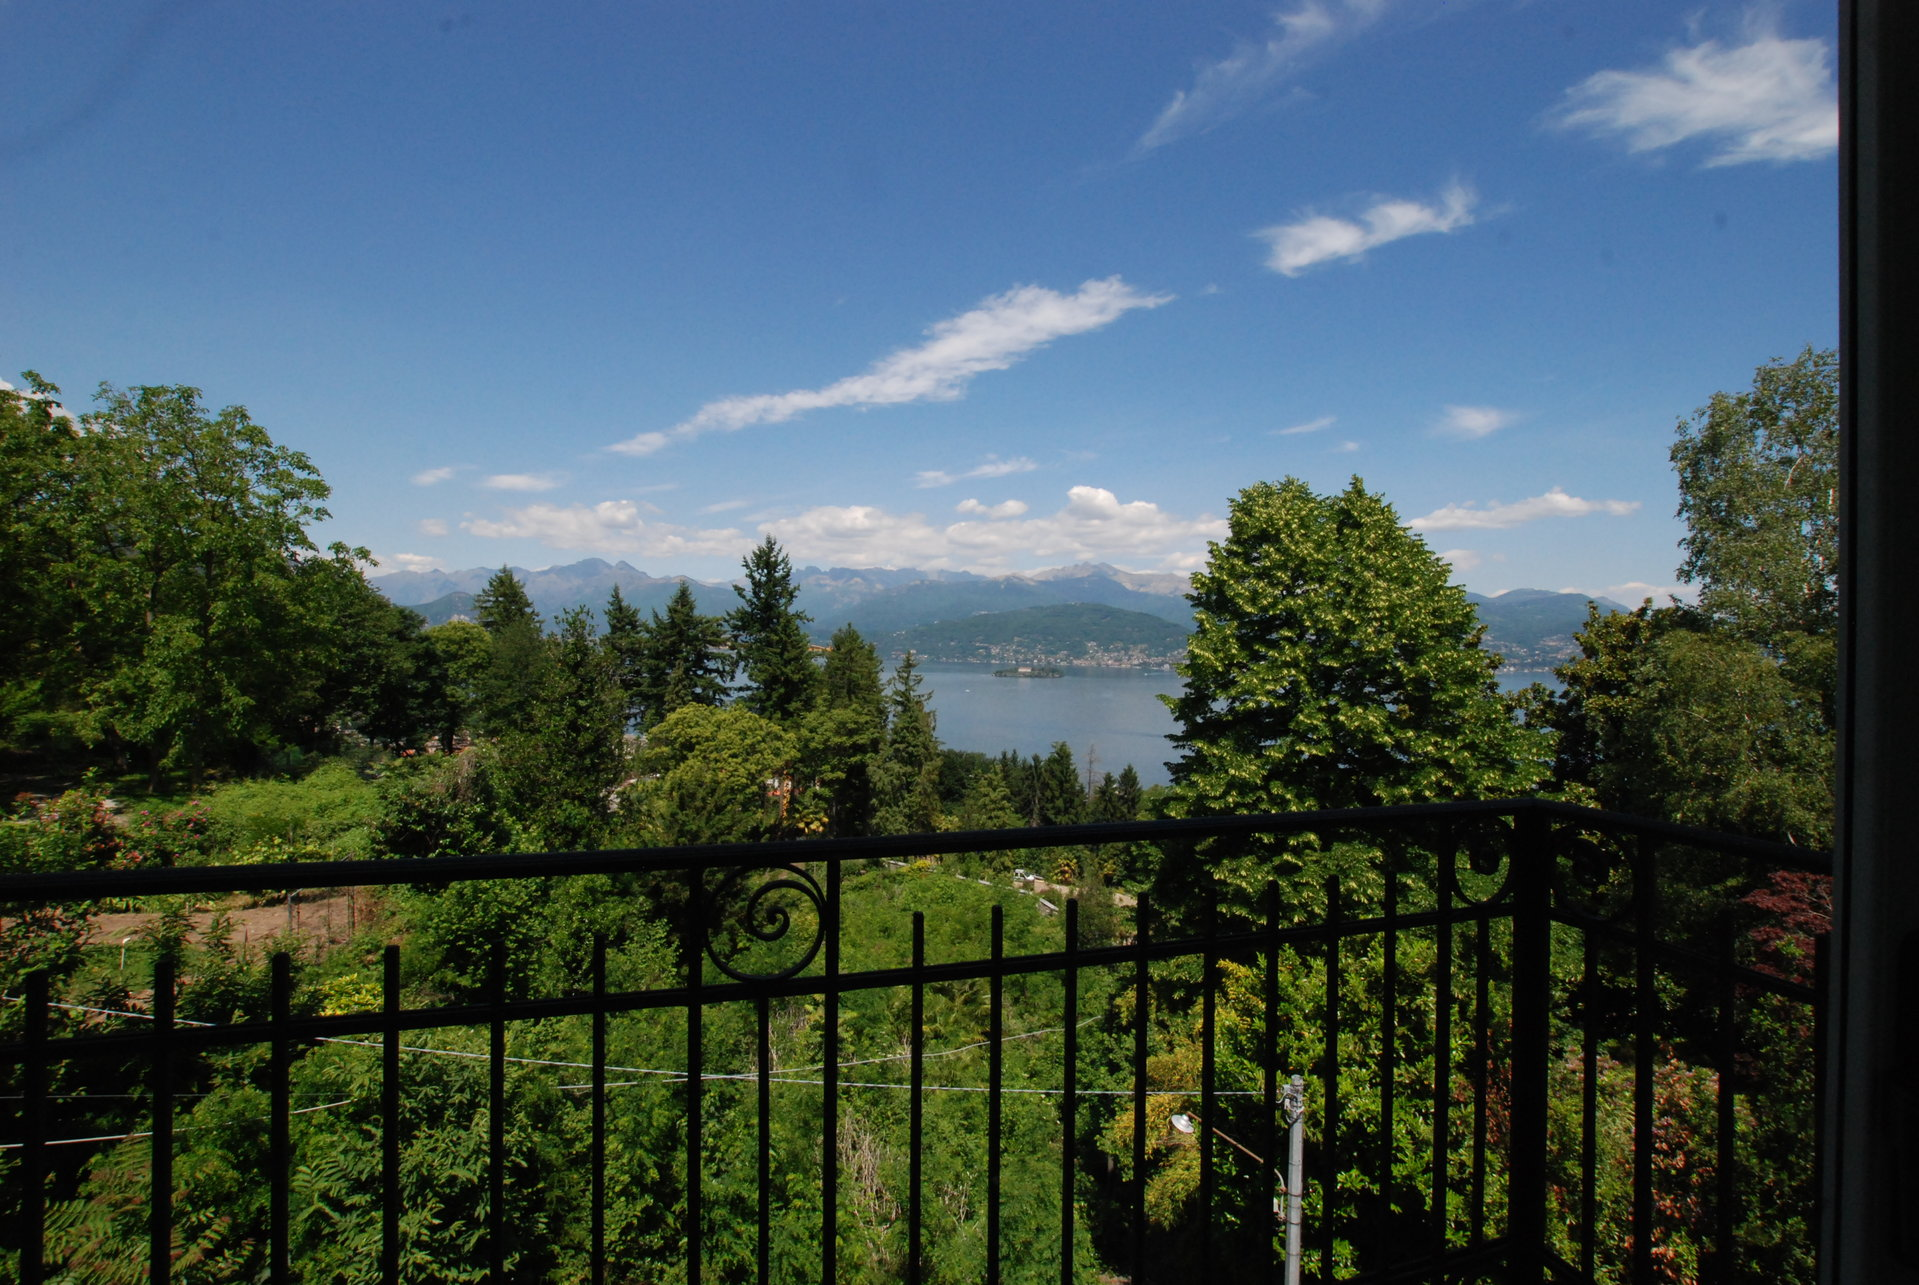 Furnished apartment for sale in Stresa - view from the balcony